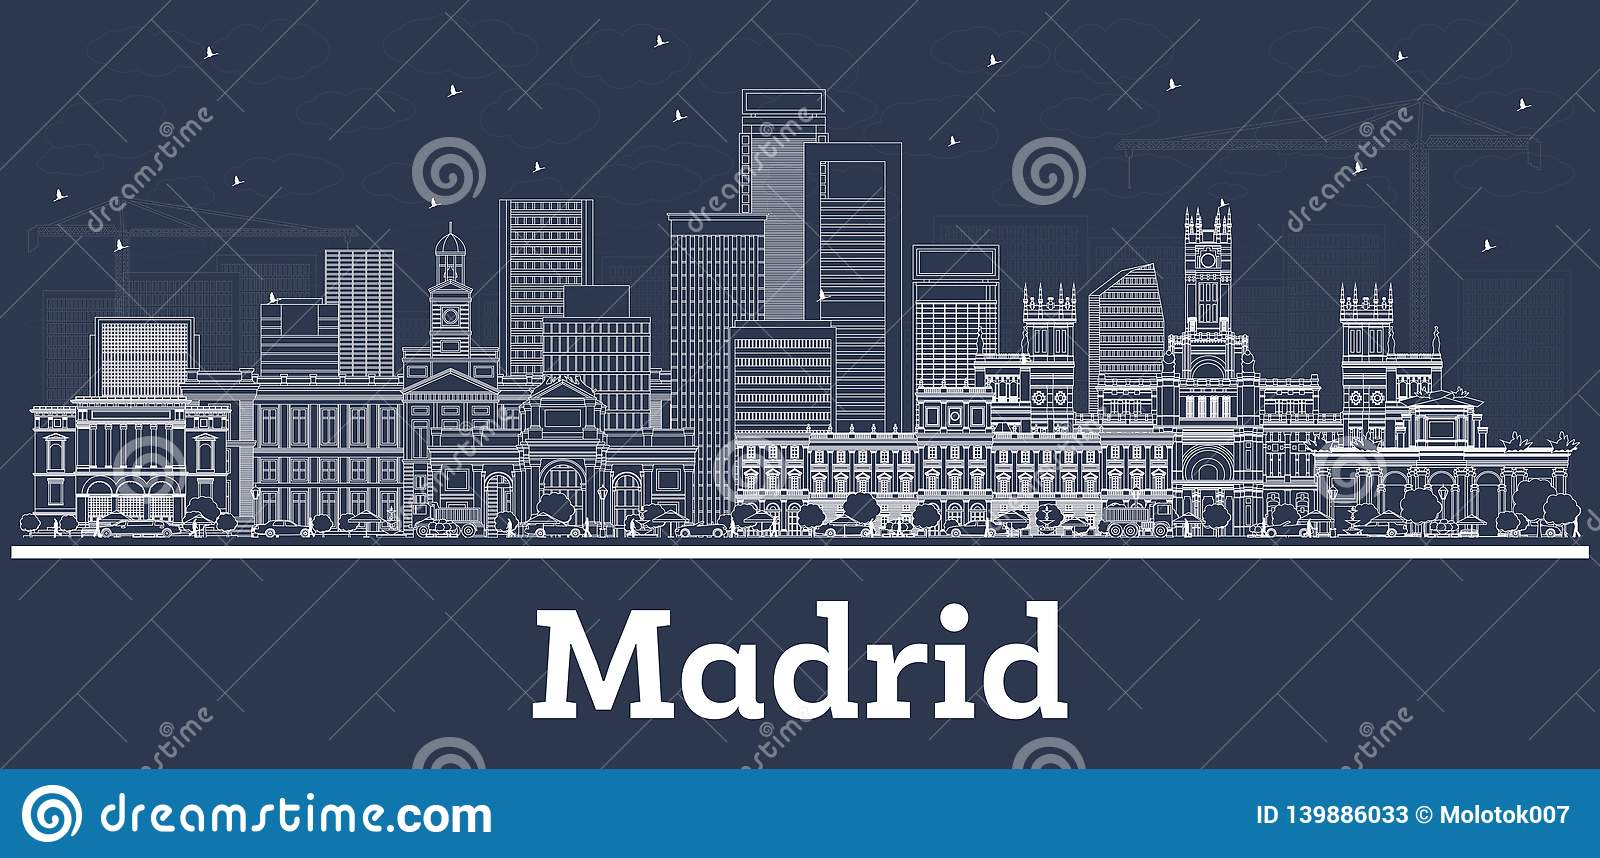 Outline Madrid Spain City Skyline with White Buildings